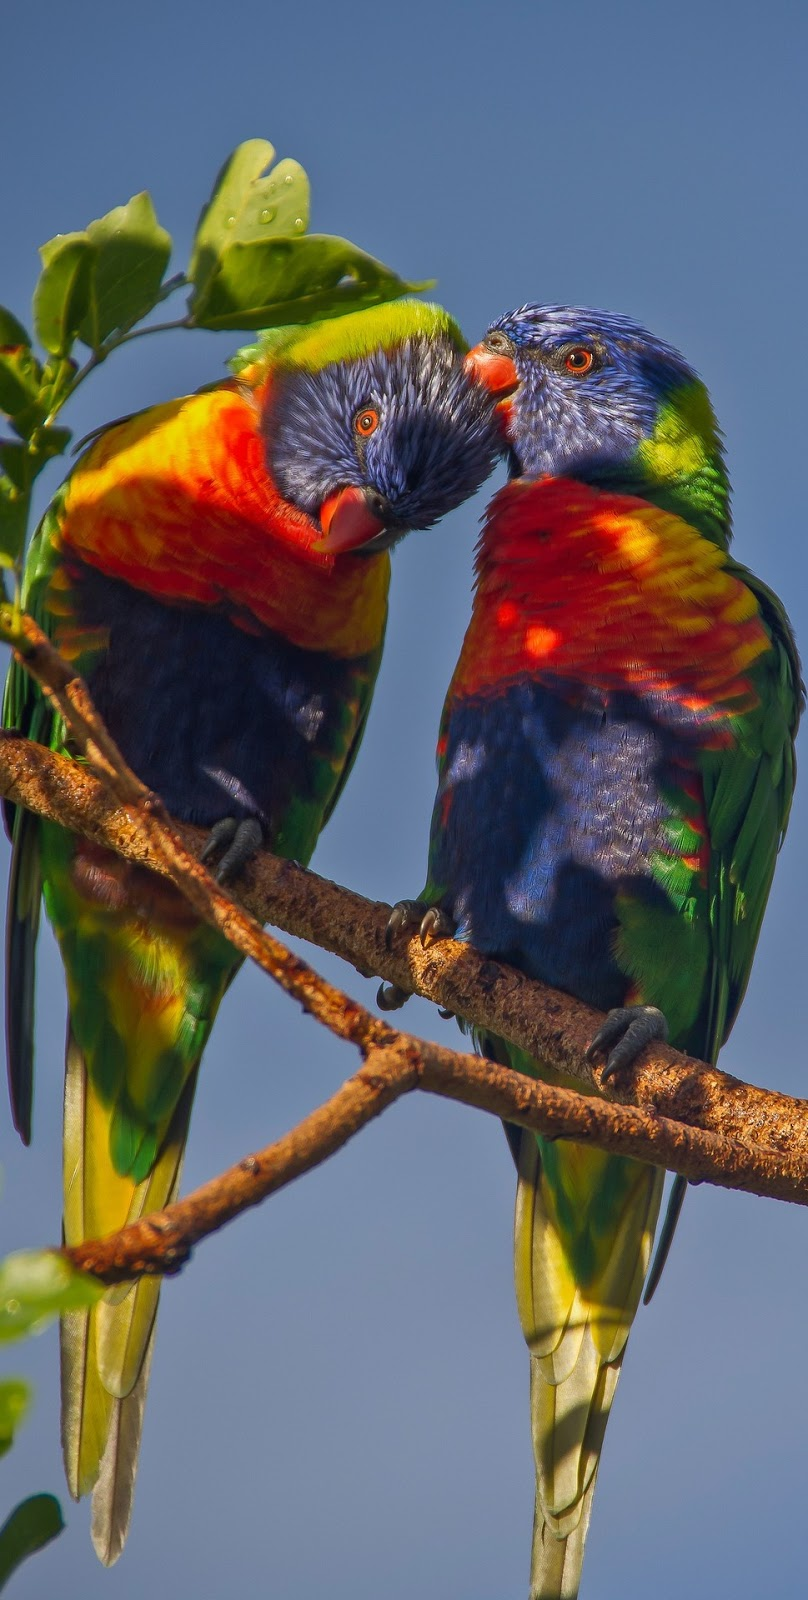 Lovely picture of a rainbow lorikeet couple.